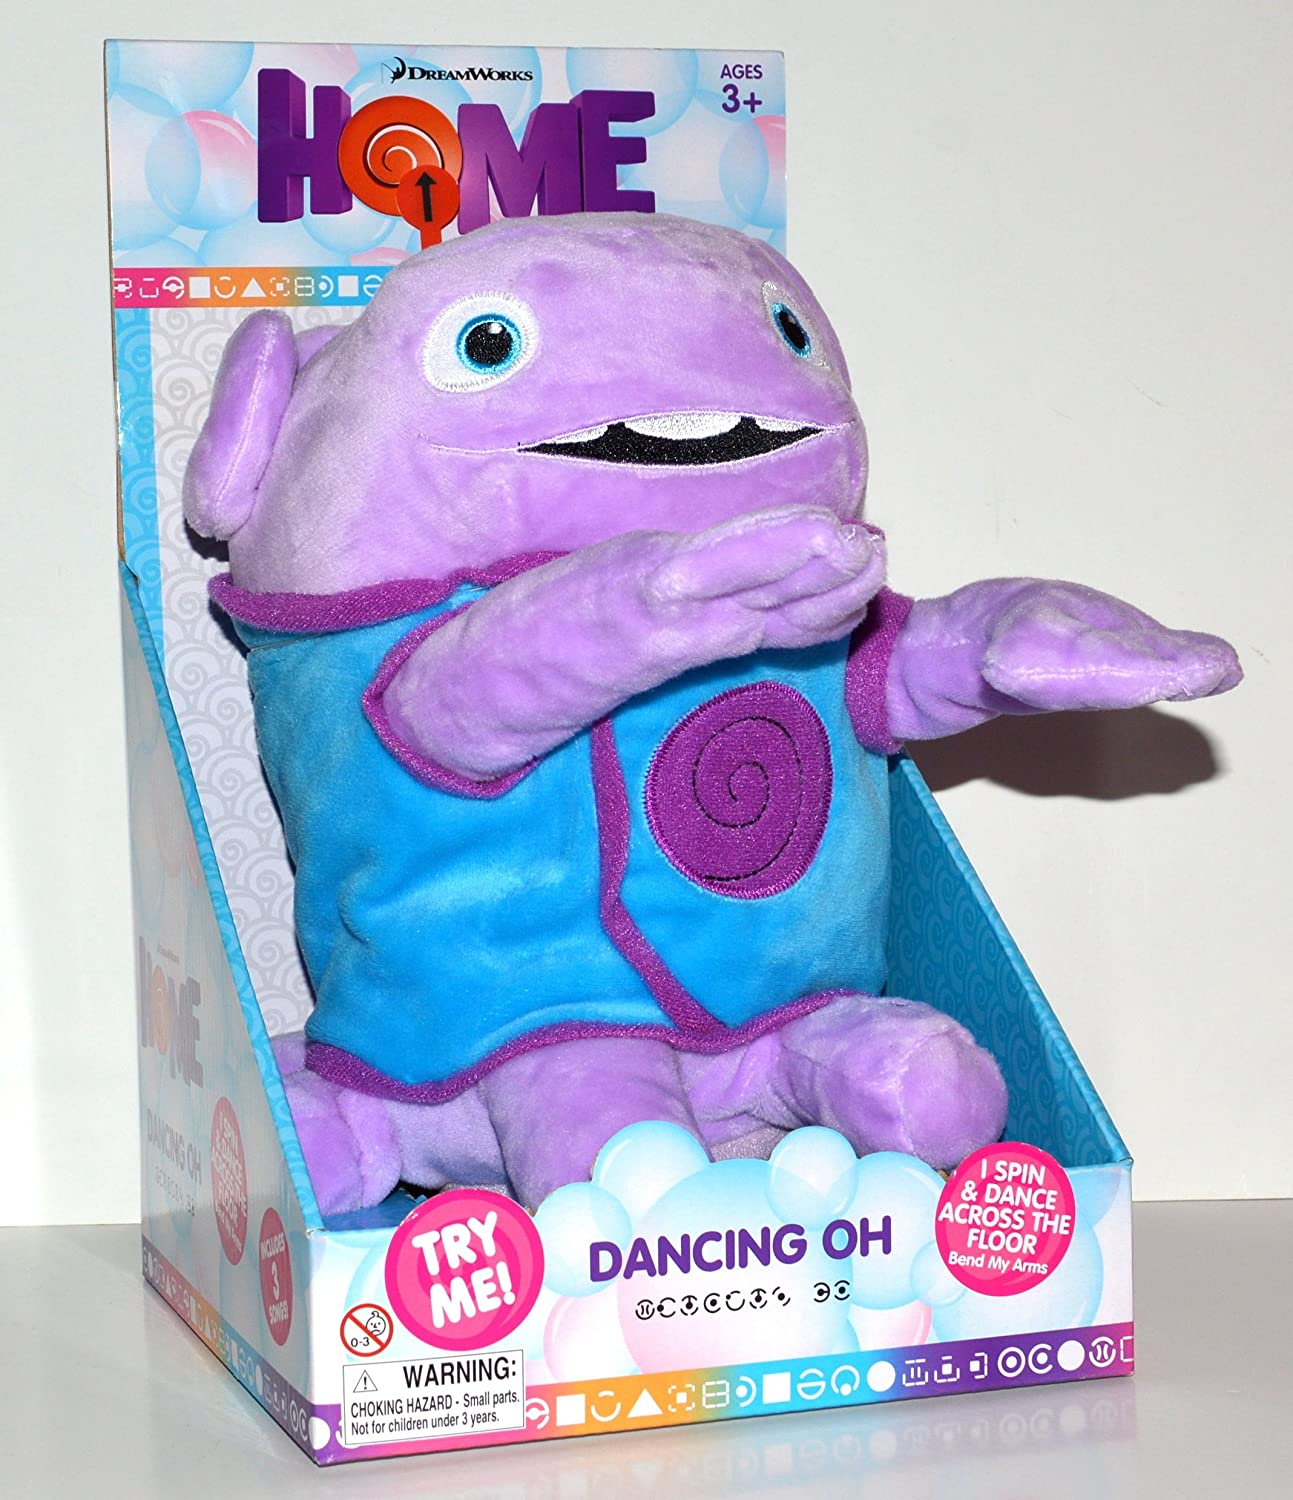 Dreamworks Home Animated Dancing Soft Plush Oh Toy In Box